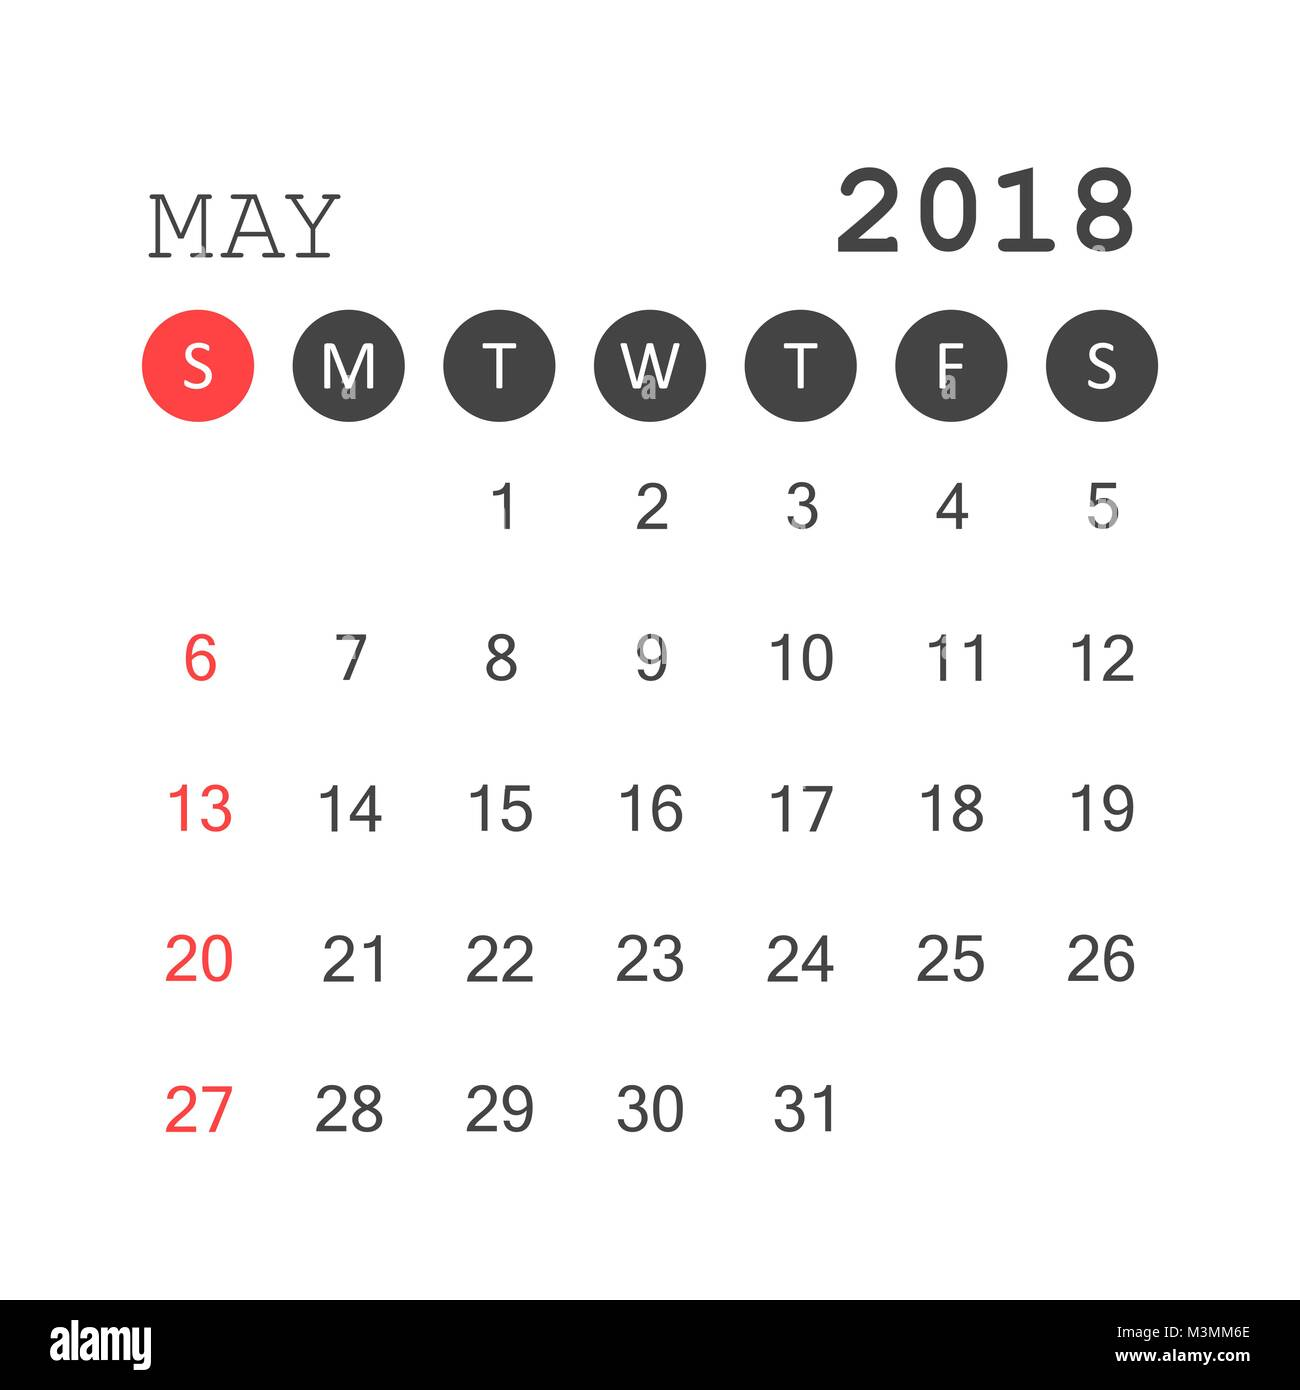 calendar 2018 week on sunday cut out stock images pictures page